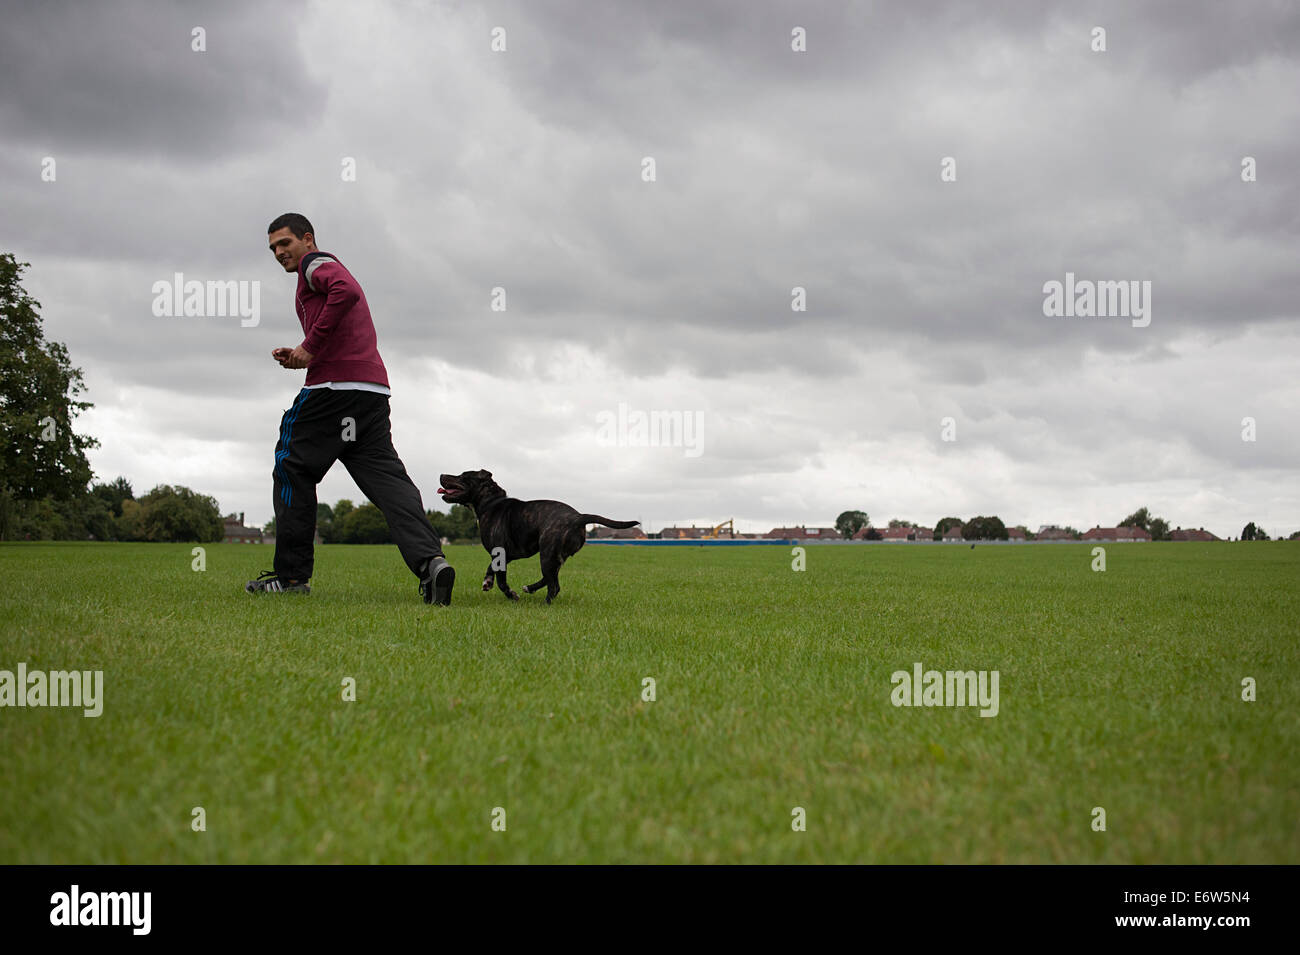 Young man runs with his dog on the grass in a large London park. - Stock Image